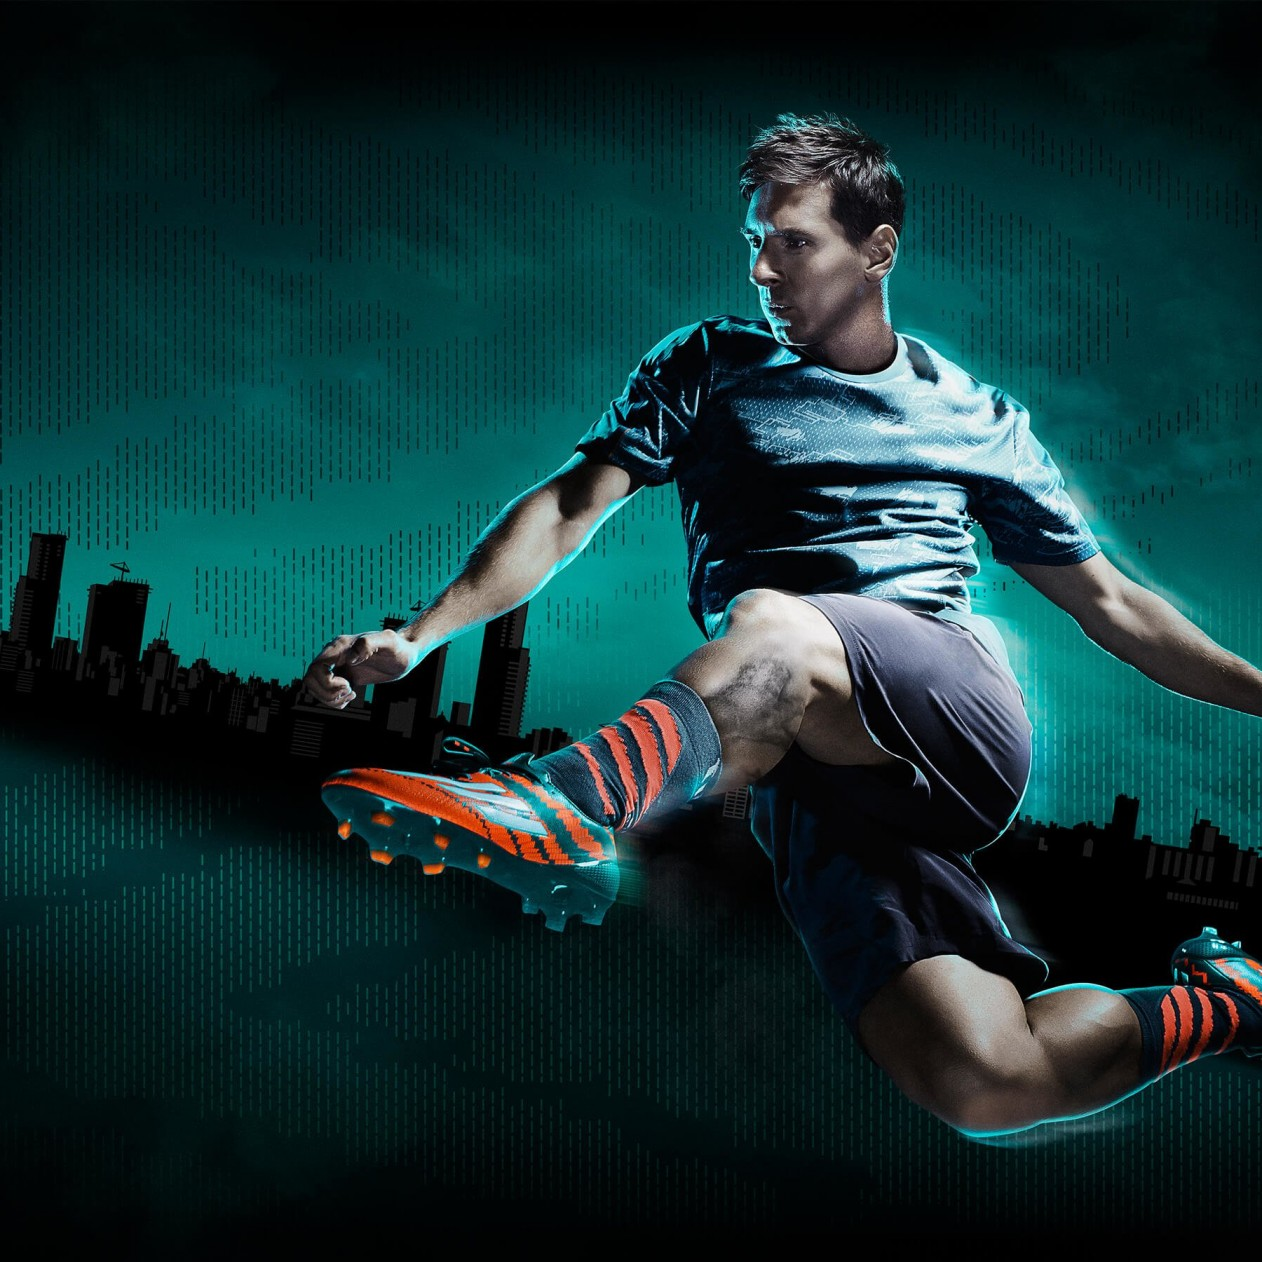 Lionel Messi Adidas Commercial Wallpaper for Apple iPad mini